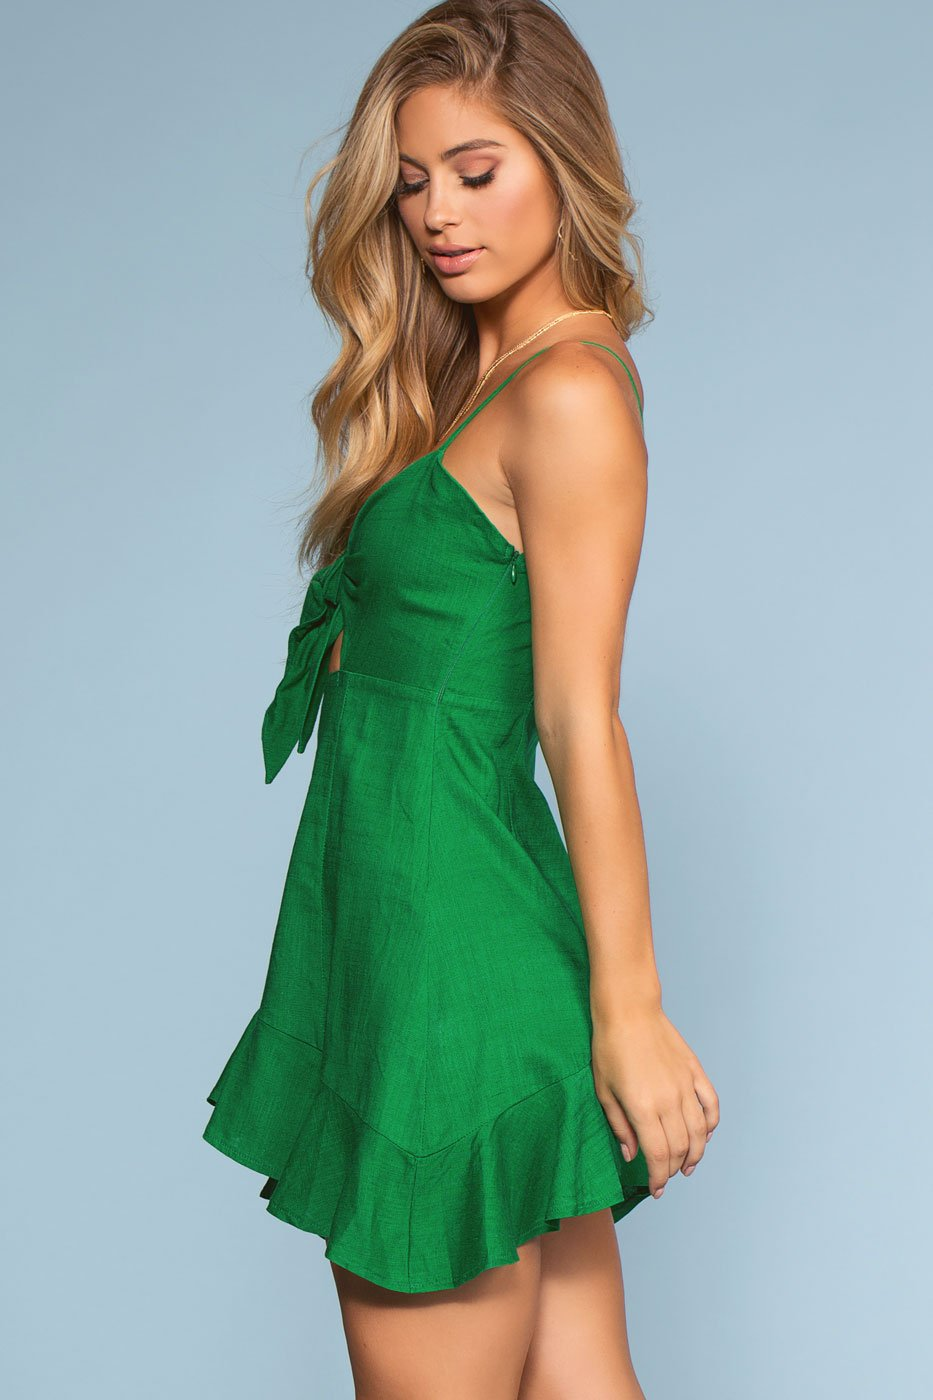 Dresses - Touch Of Tropics Dress - Green